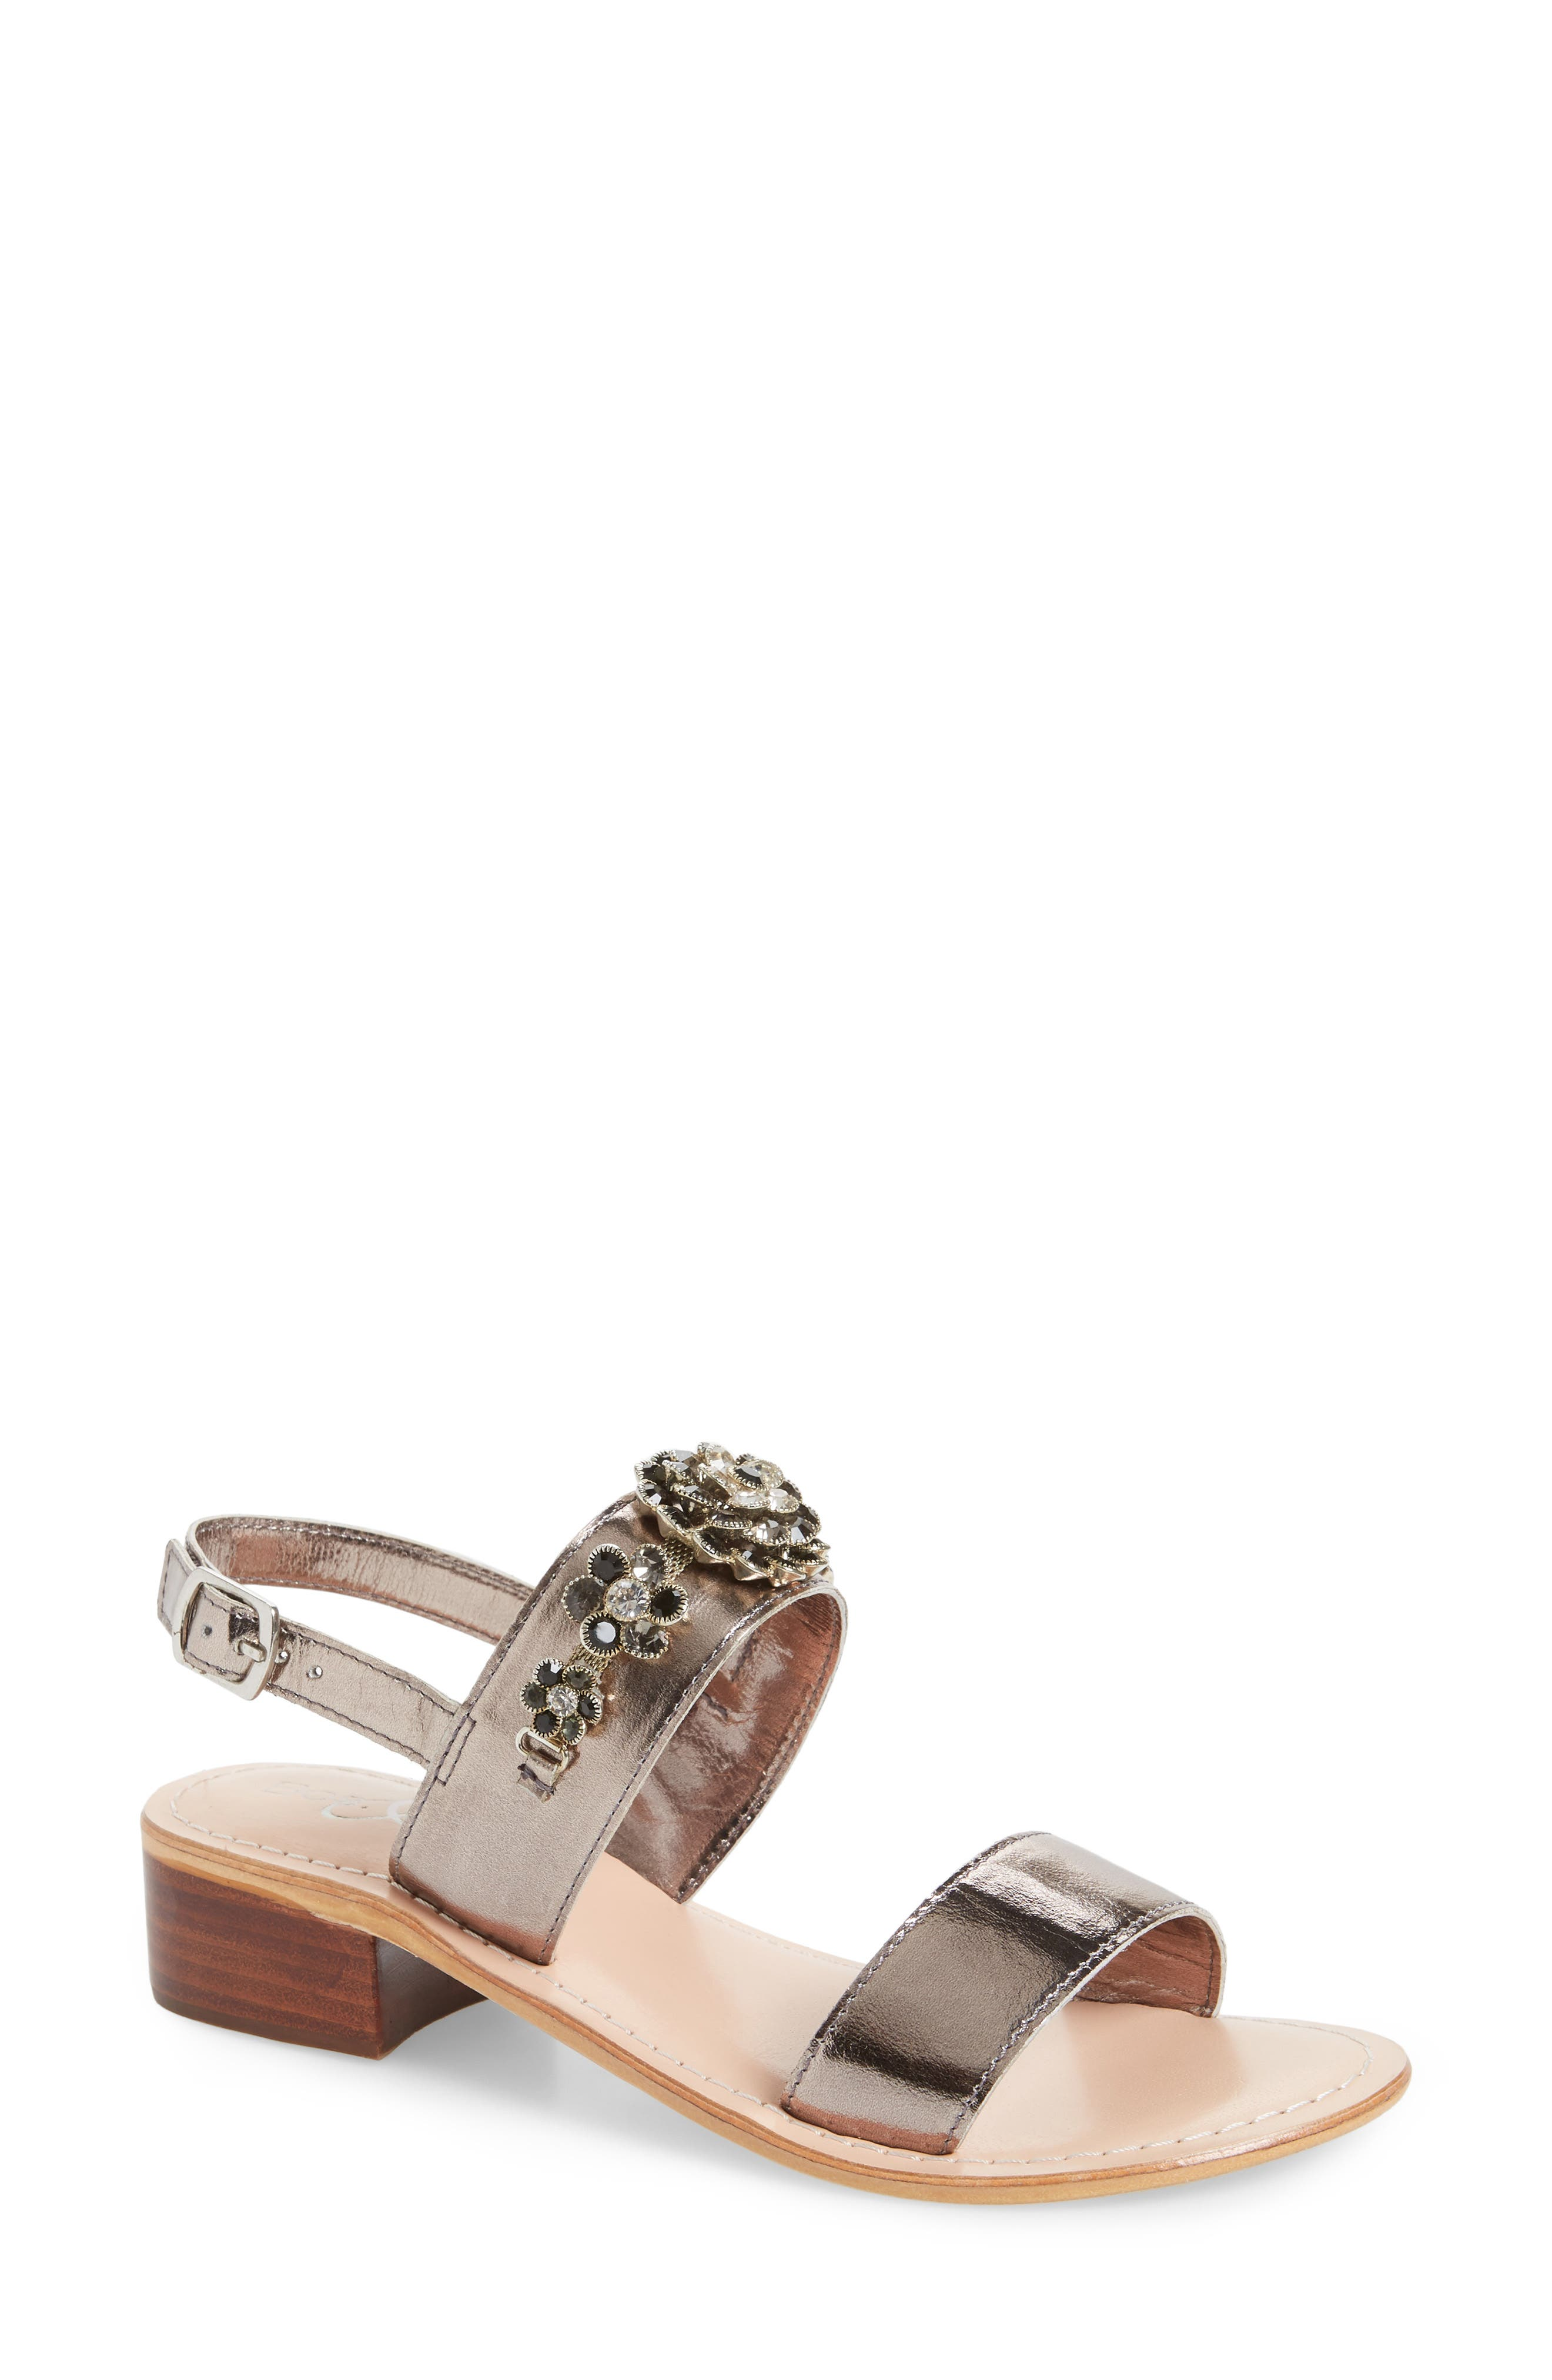 Wand Embellished Slingback Sandal,                             Main thumbnail 1, color,                             PEWTER/ ANTHRACITE LEATHER